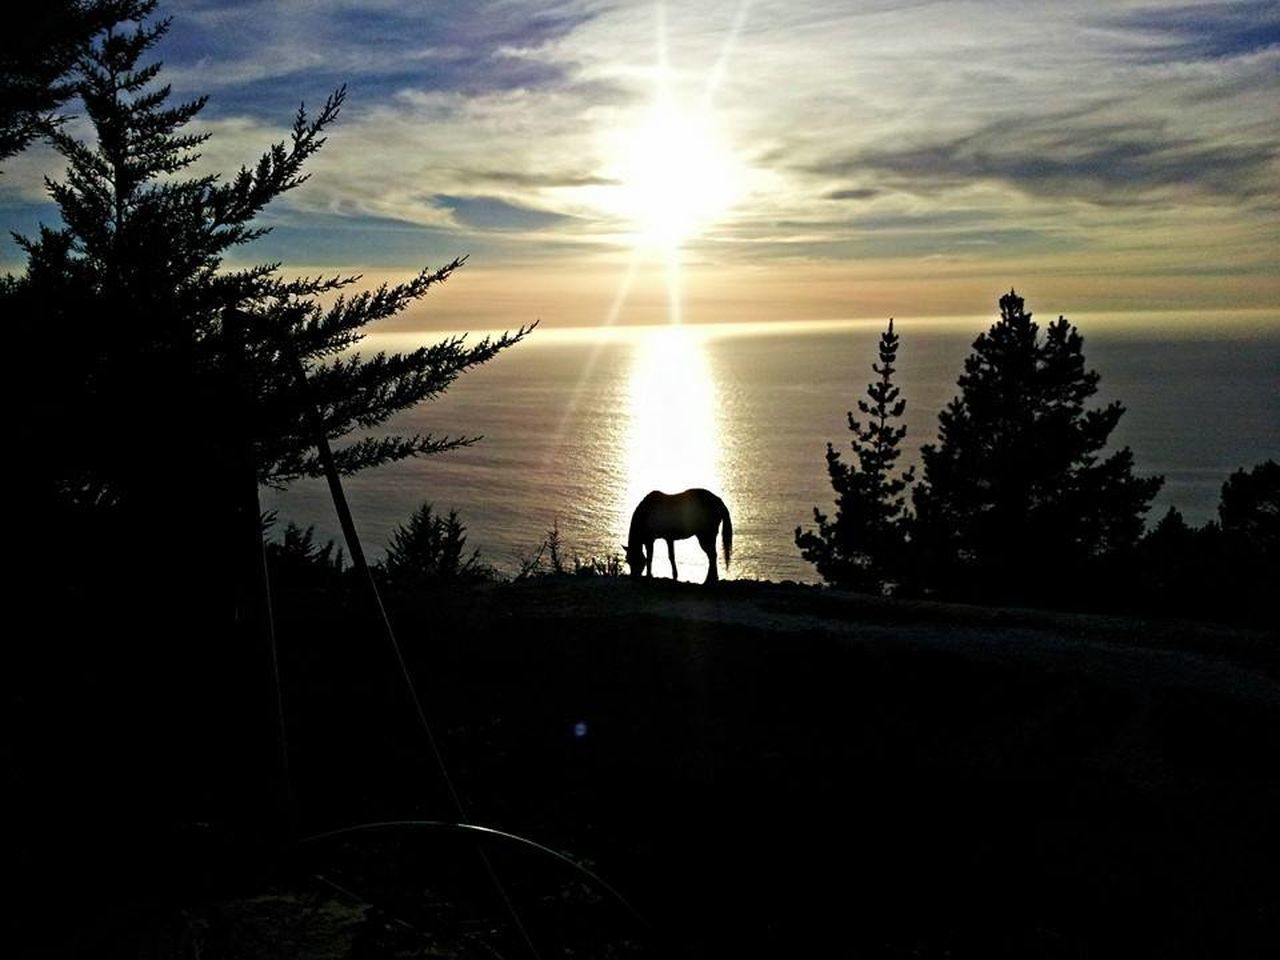 This photo op presented itself as we arrived at our cabin in Big Sur, California. My wife took the shot.Big Sur, California. Big Sur Sunsets Sunset Horses